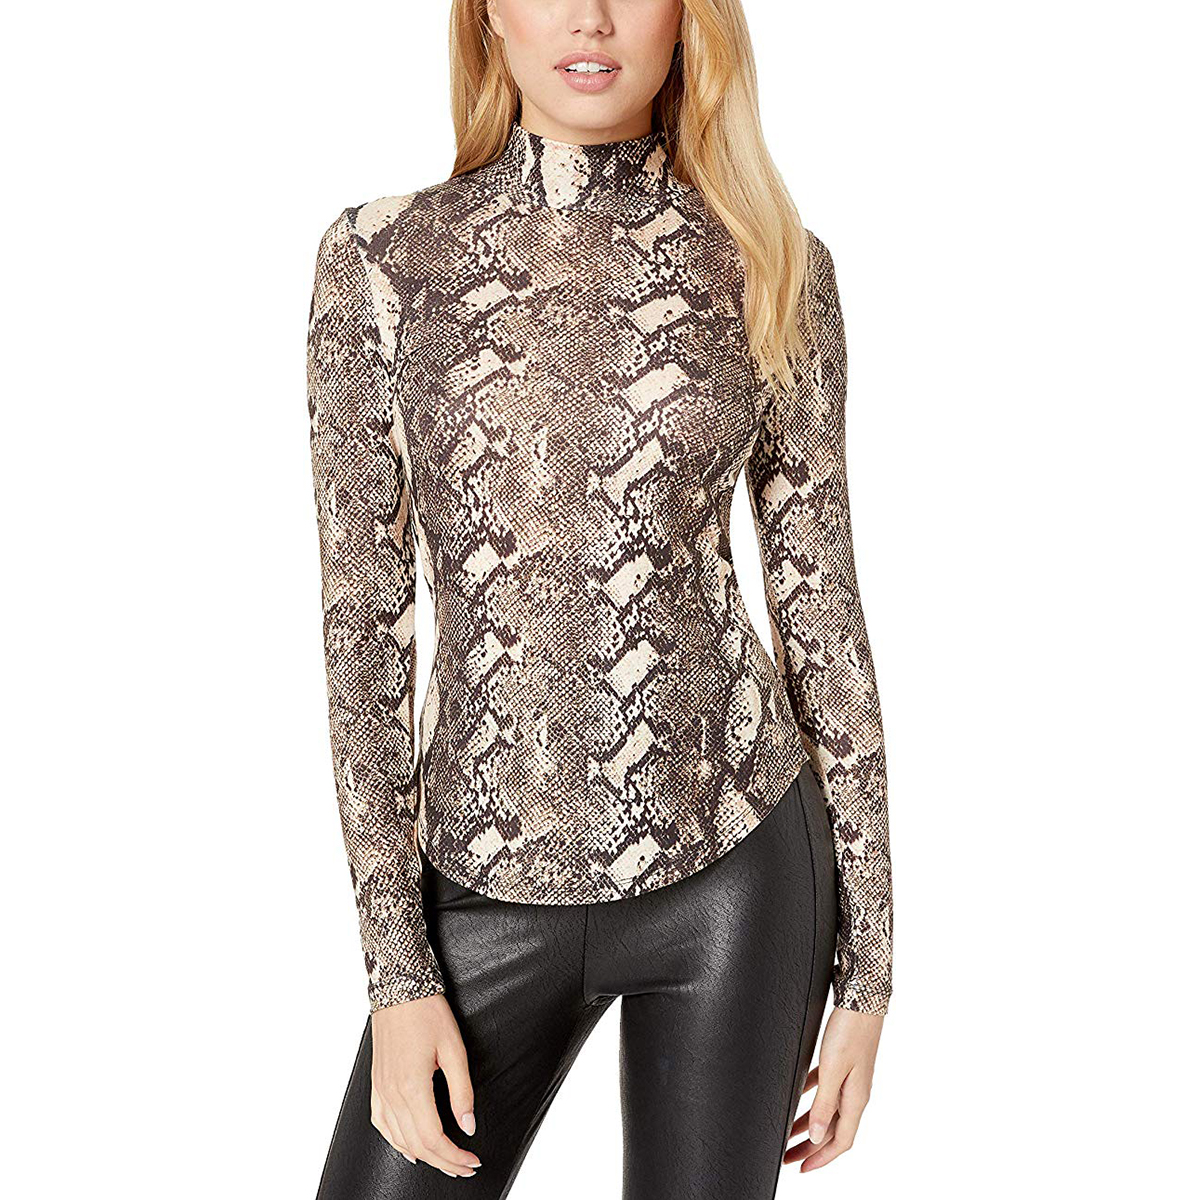 French Connection Women's Animal Printed Tops